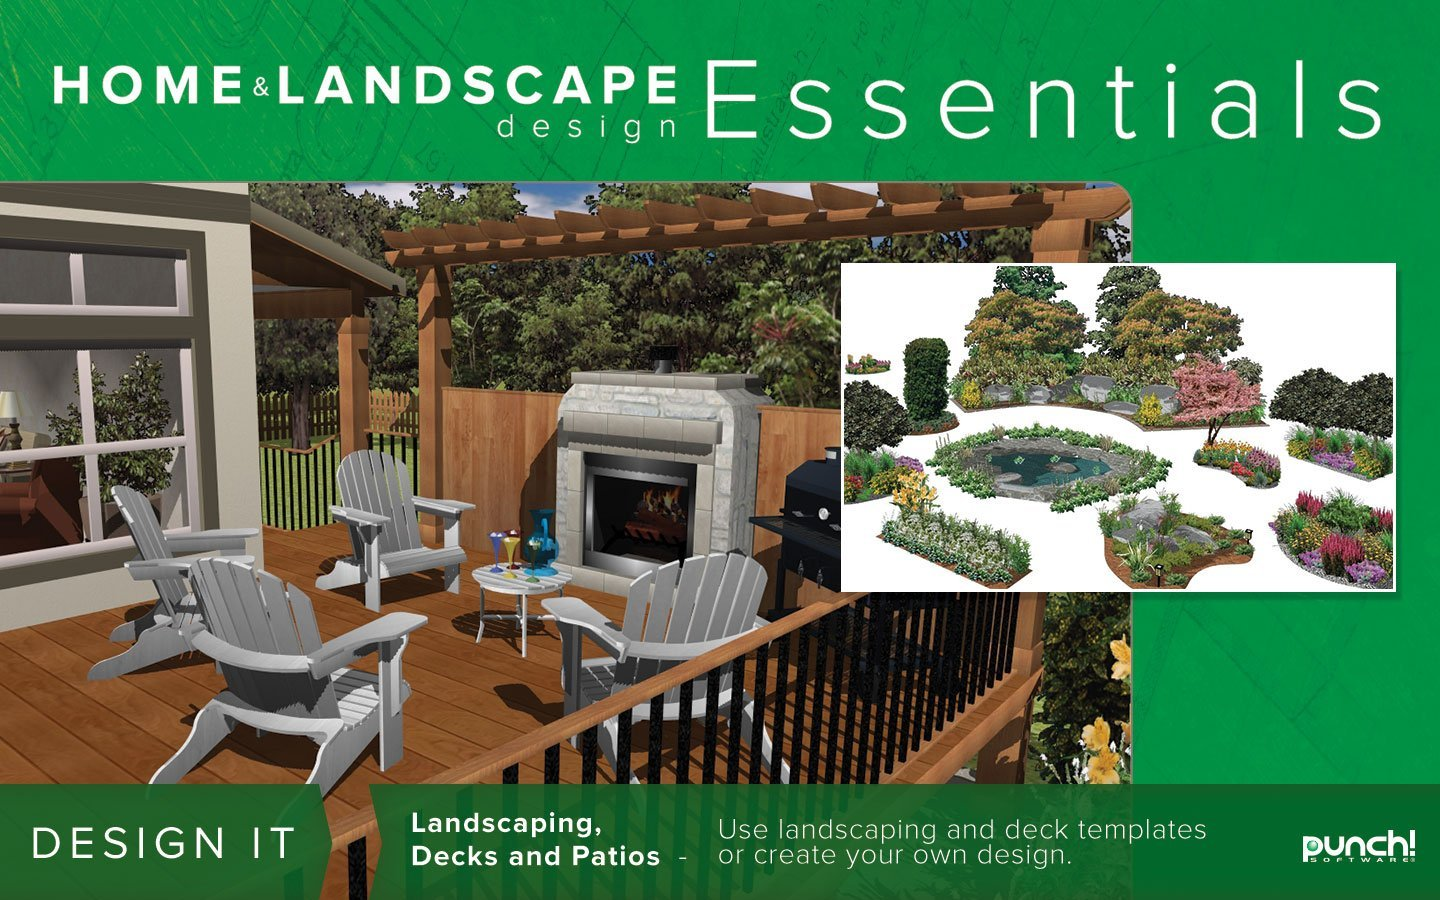 Punch home landscape design essentials v18 review home punch design home and landscaping for Punch home design